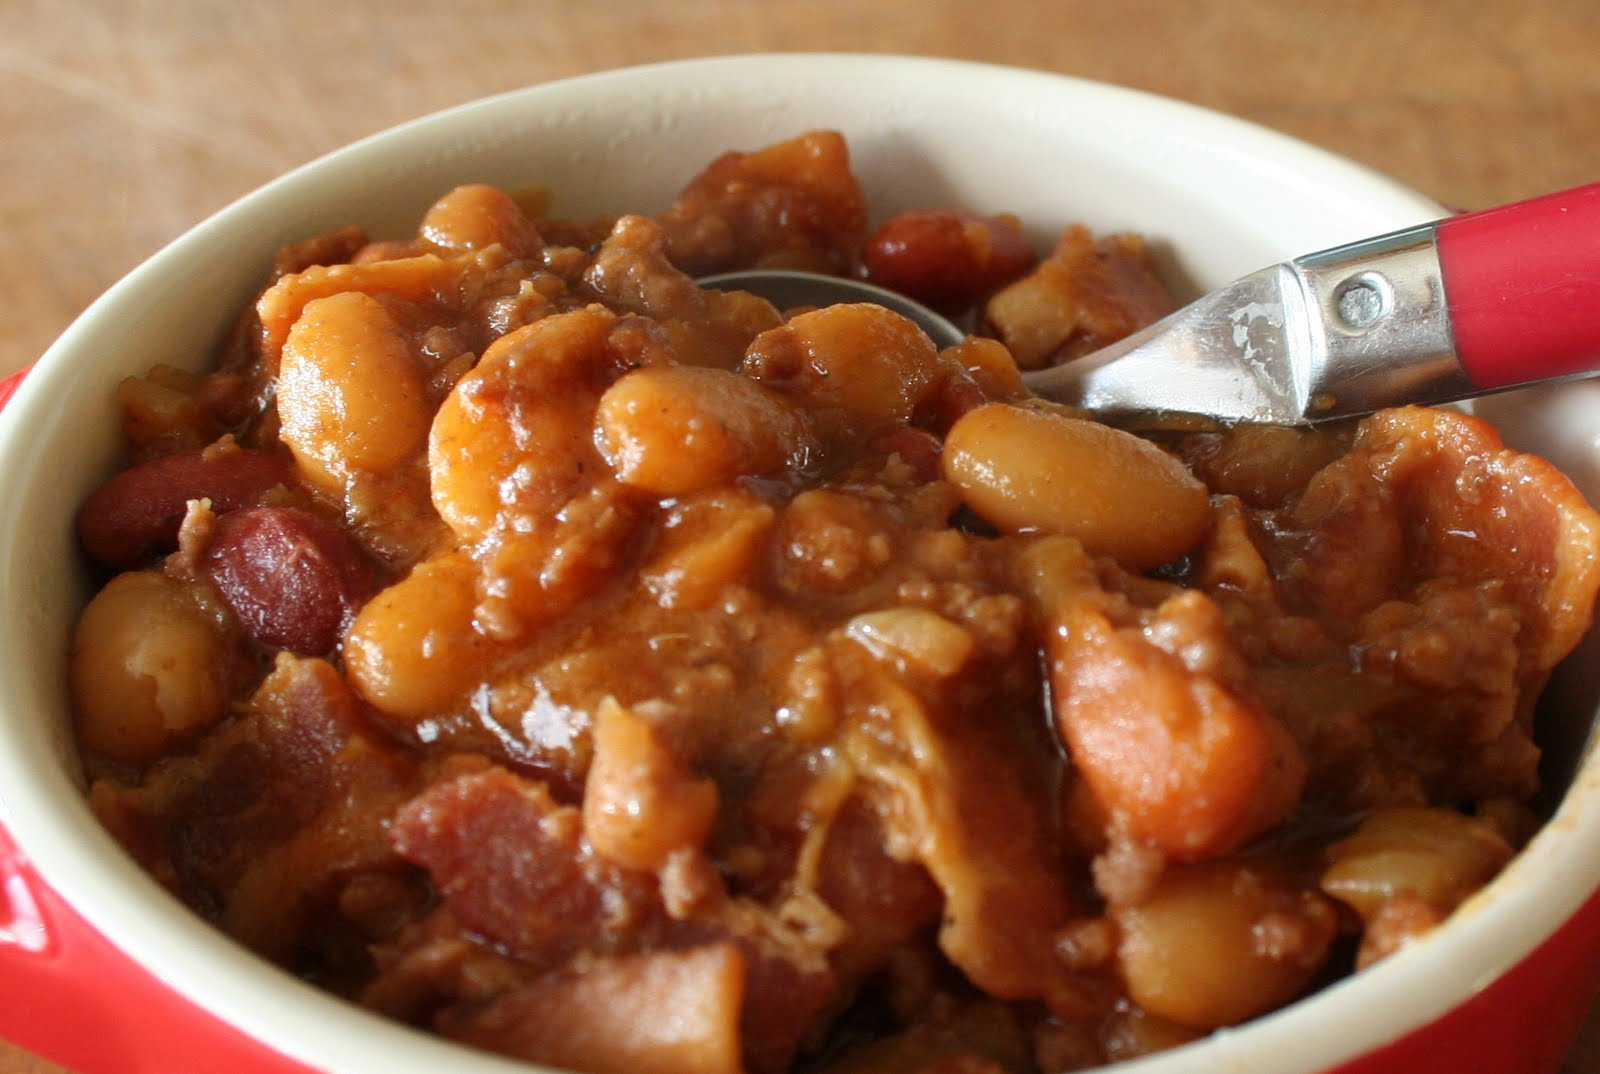 I also omitted the garbanzo beans and black-eyed peas and pinto beans. I'd used Great Northern, Cannellini Beans and Navy Beans in place of the other beans. I did use the butter beans and kidney beans! I just had a can of original baked beans with bacon and I used that in place of the pork and beans.5/5(2).